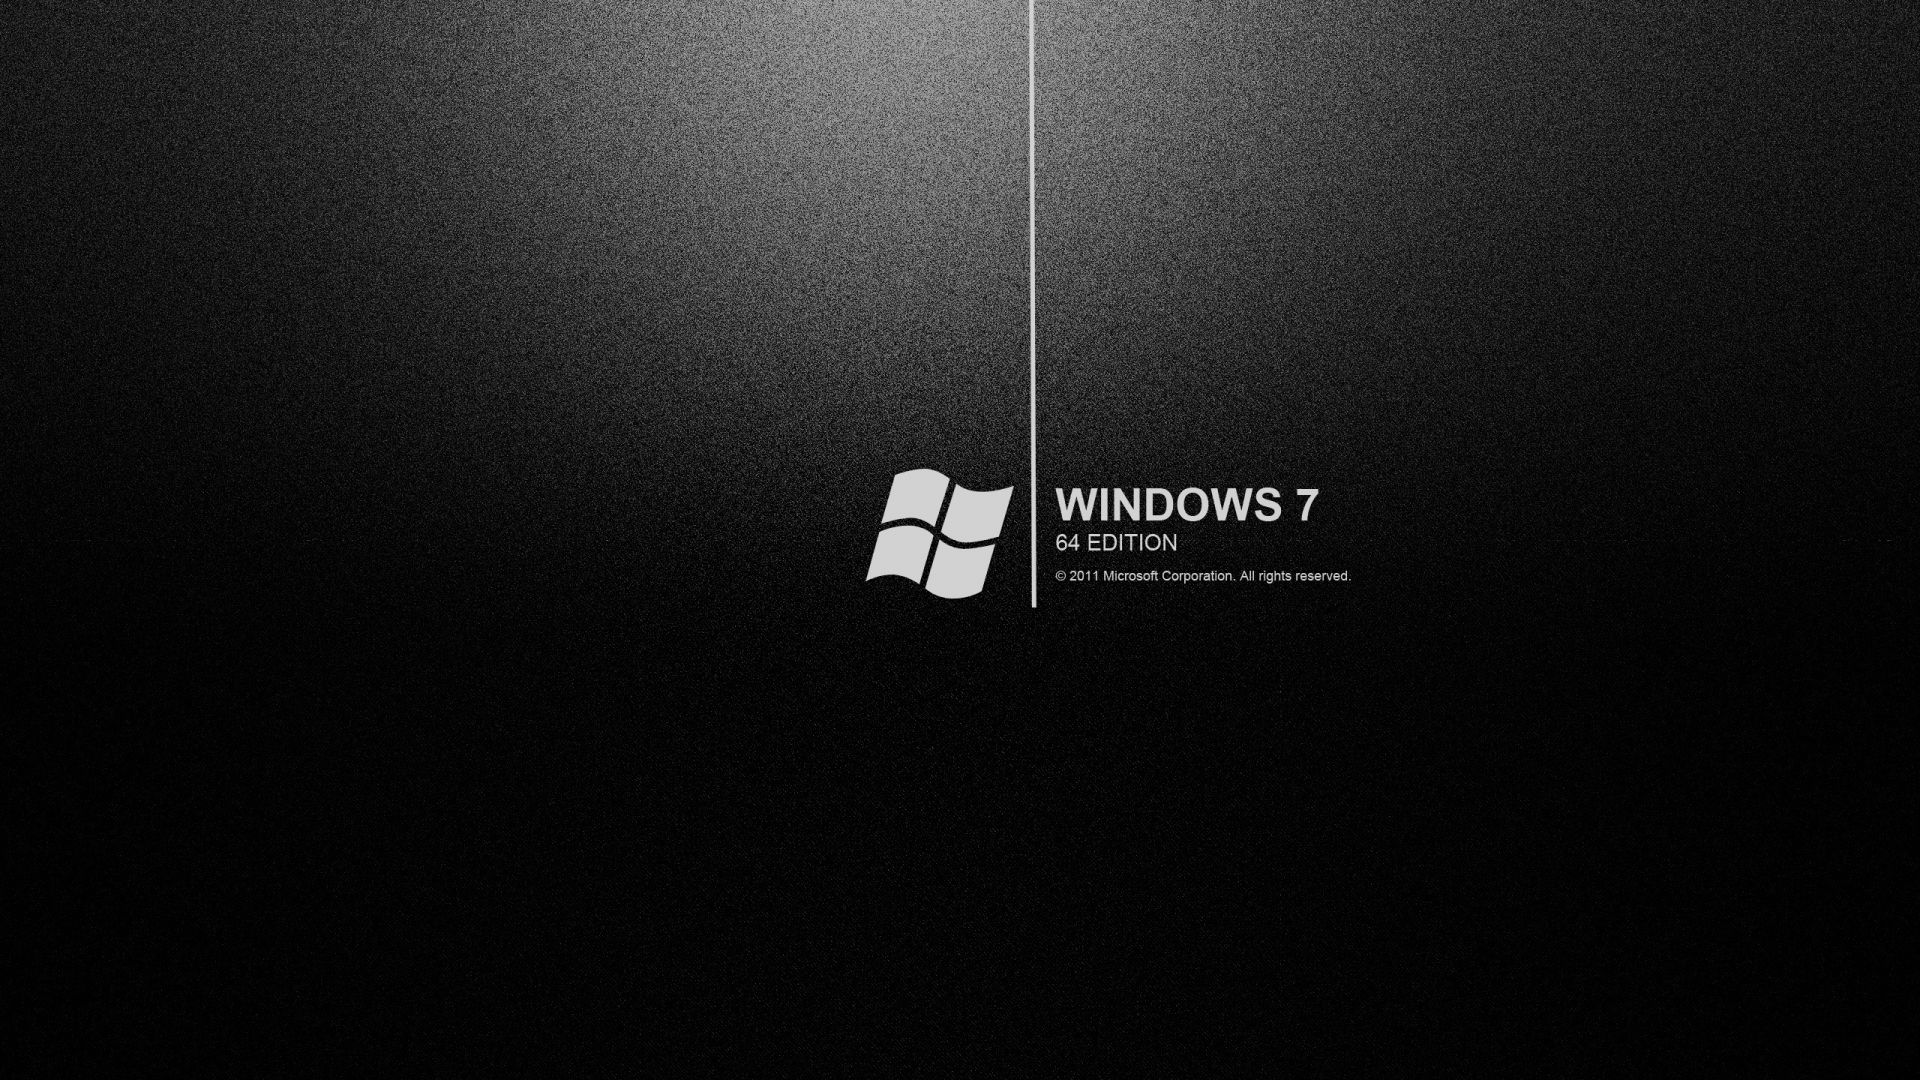 The black background with the logo of windows 7 64 edition ...